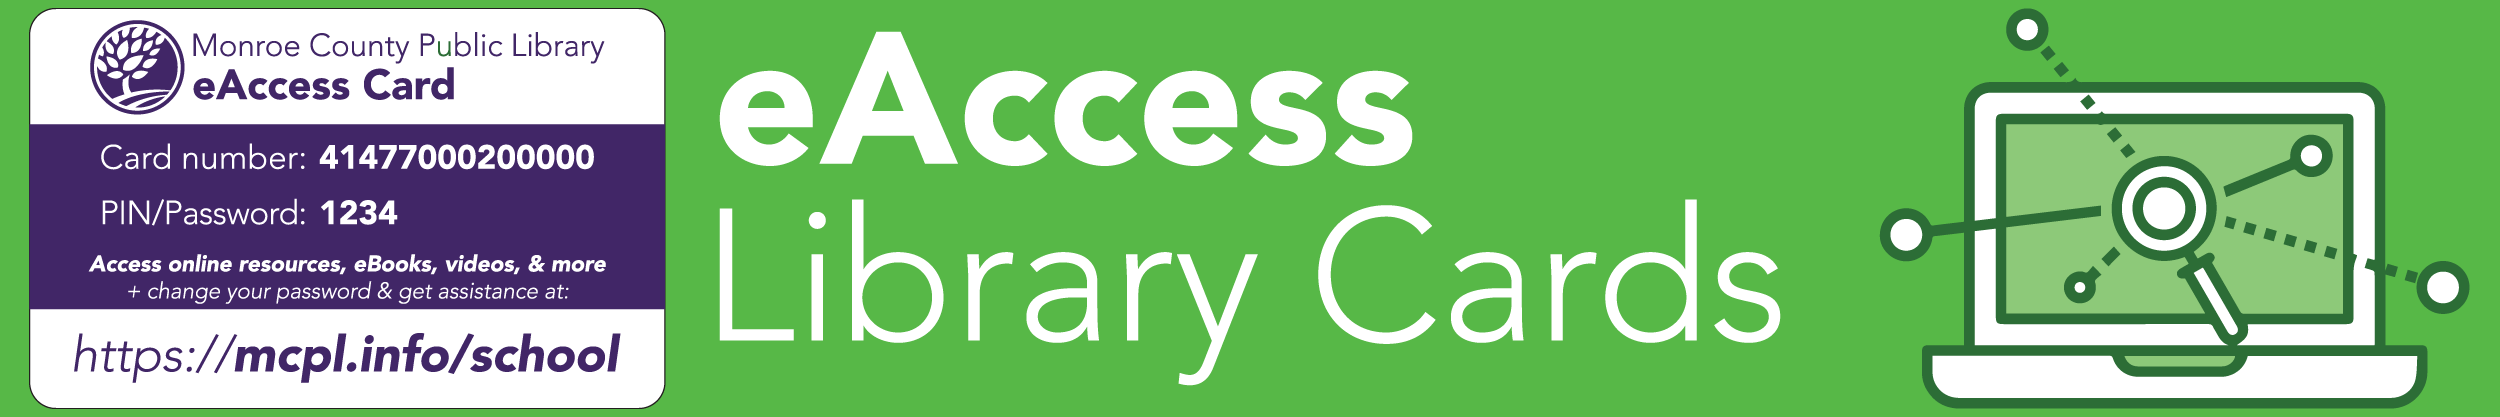 eAccess Library Cards